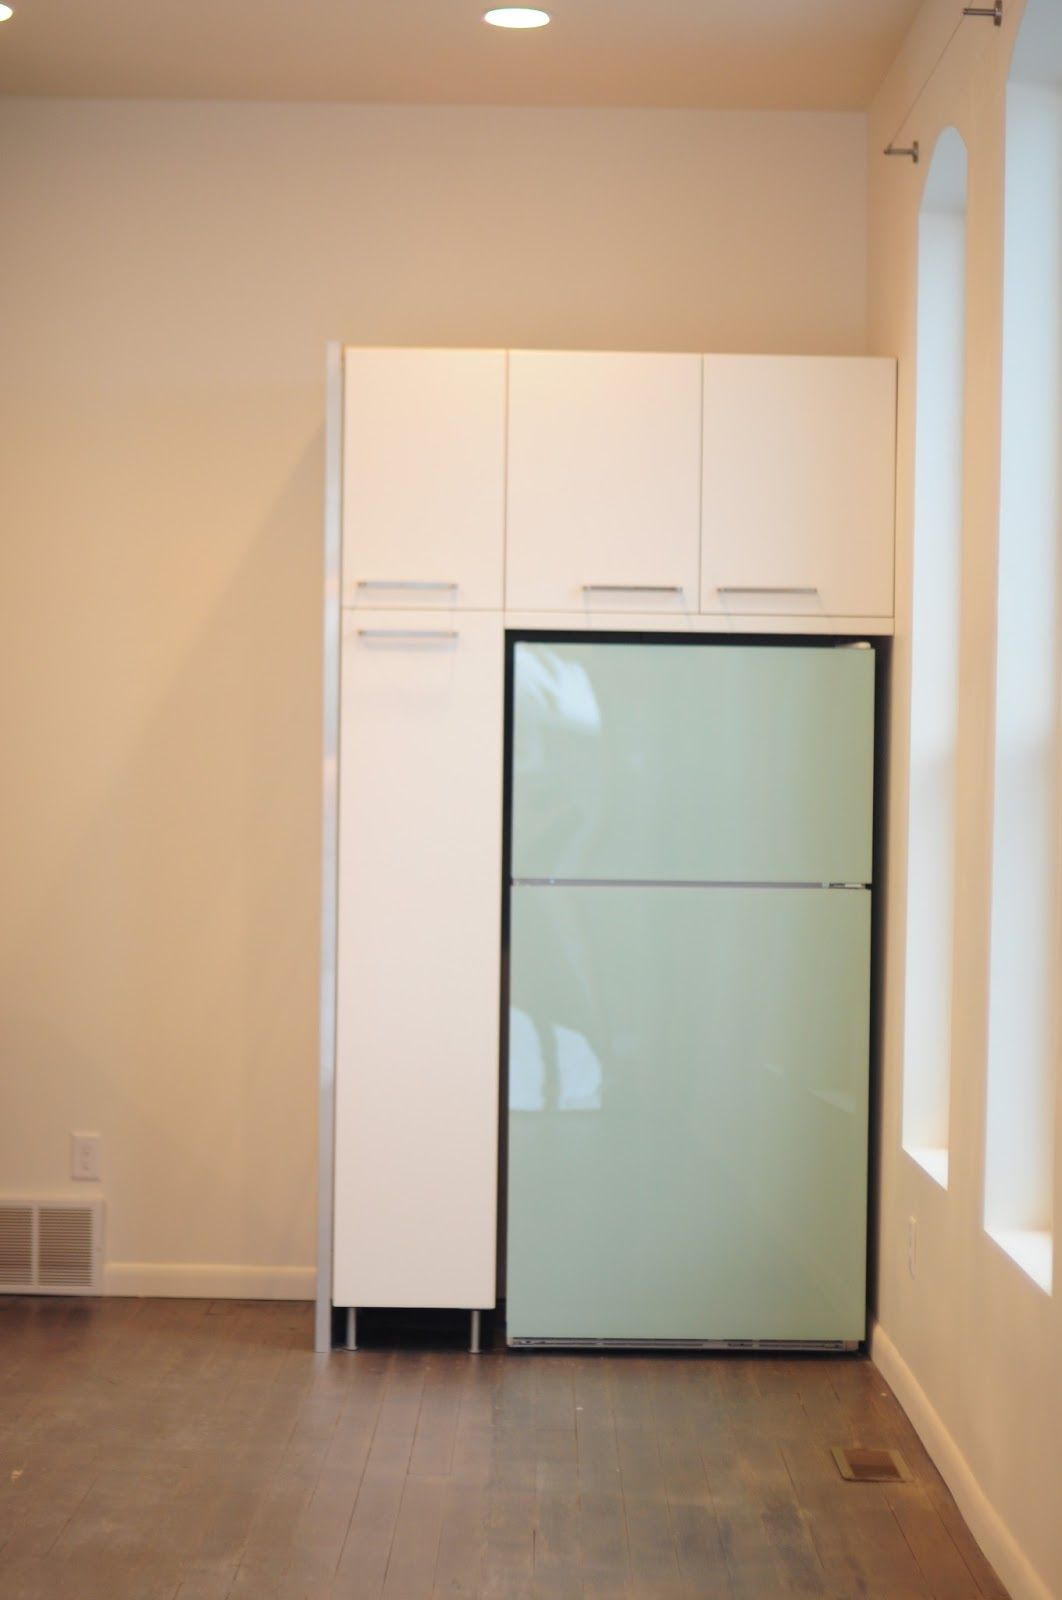 Diy Painted Plexiglass Refrigerator Panels Thread Ethic Modest Fashion Blog